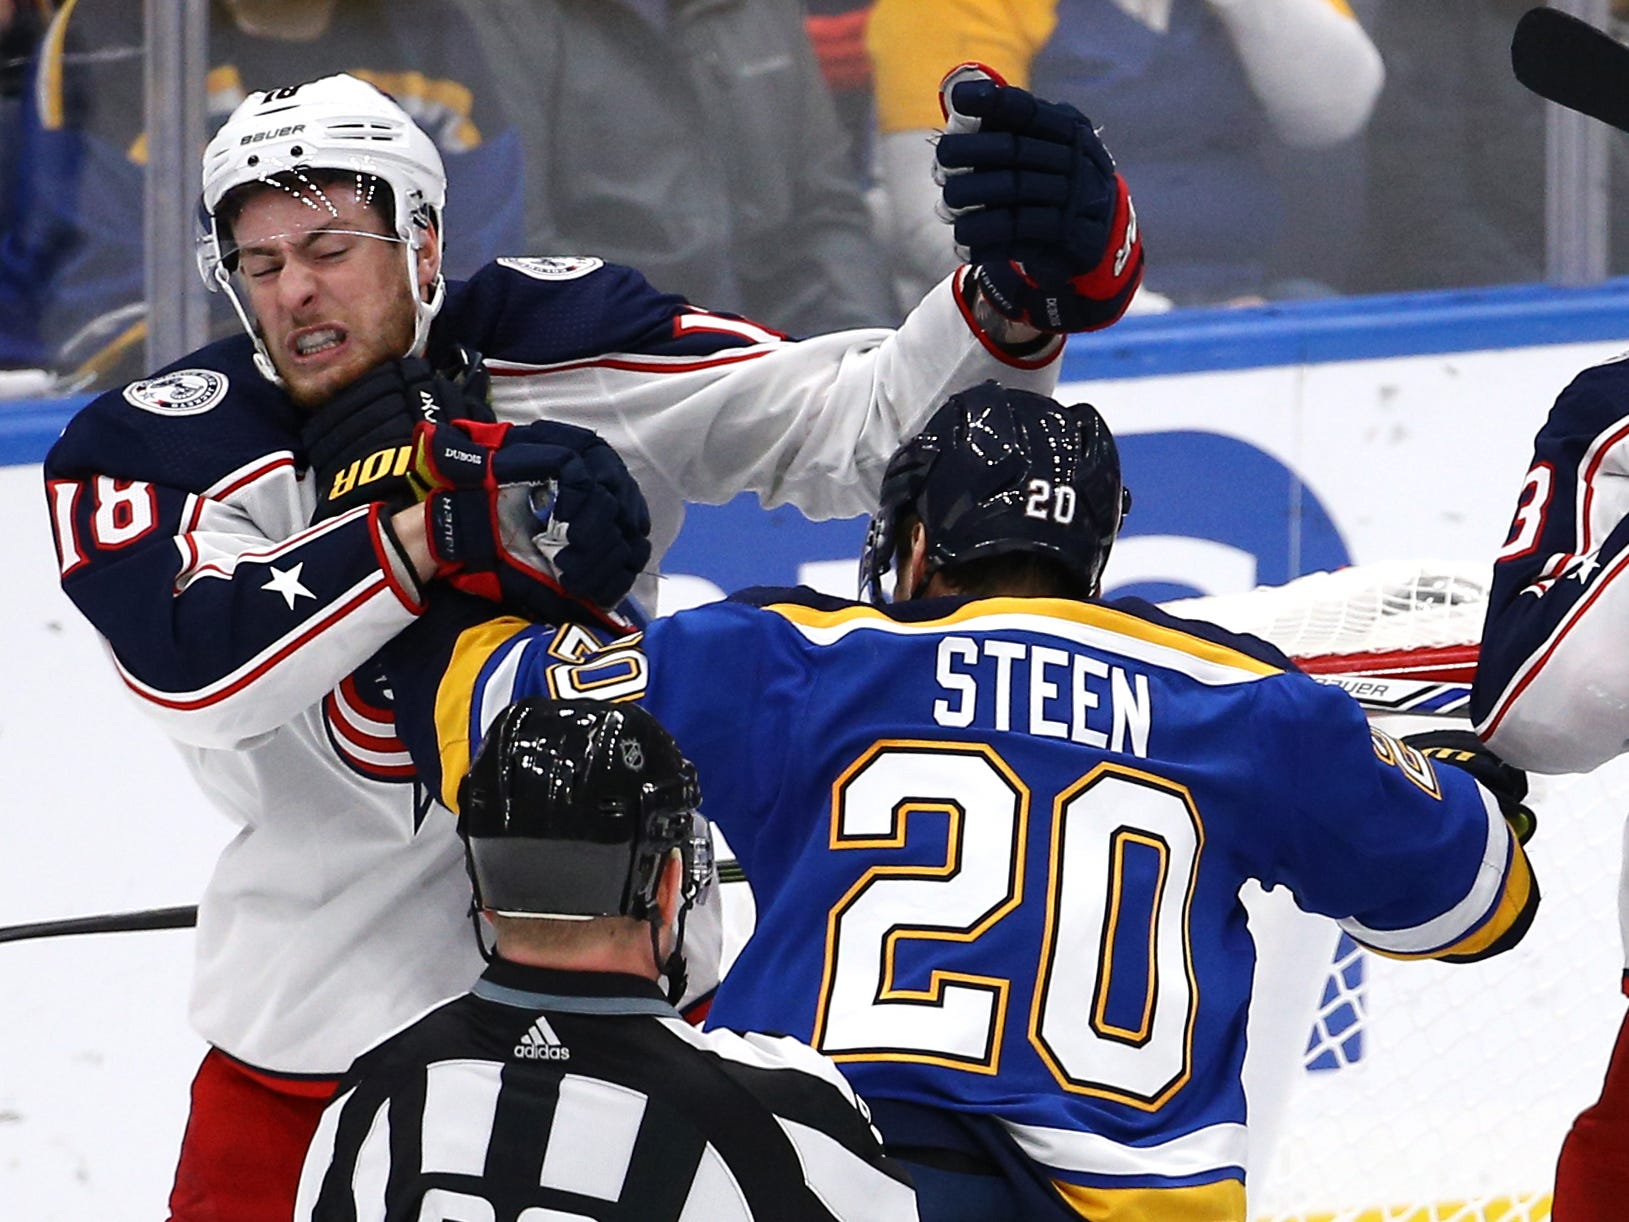 Oct. 25: Columbus Blue Jackets' Pierre-Luc Dubois vs. St. Louis Blues' Alexander Steen.